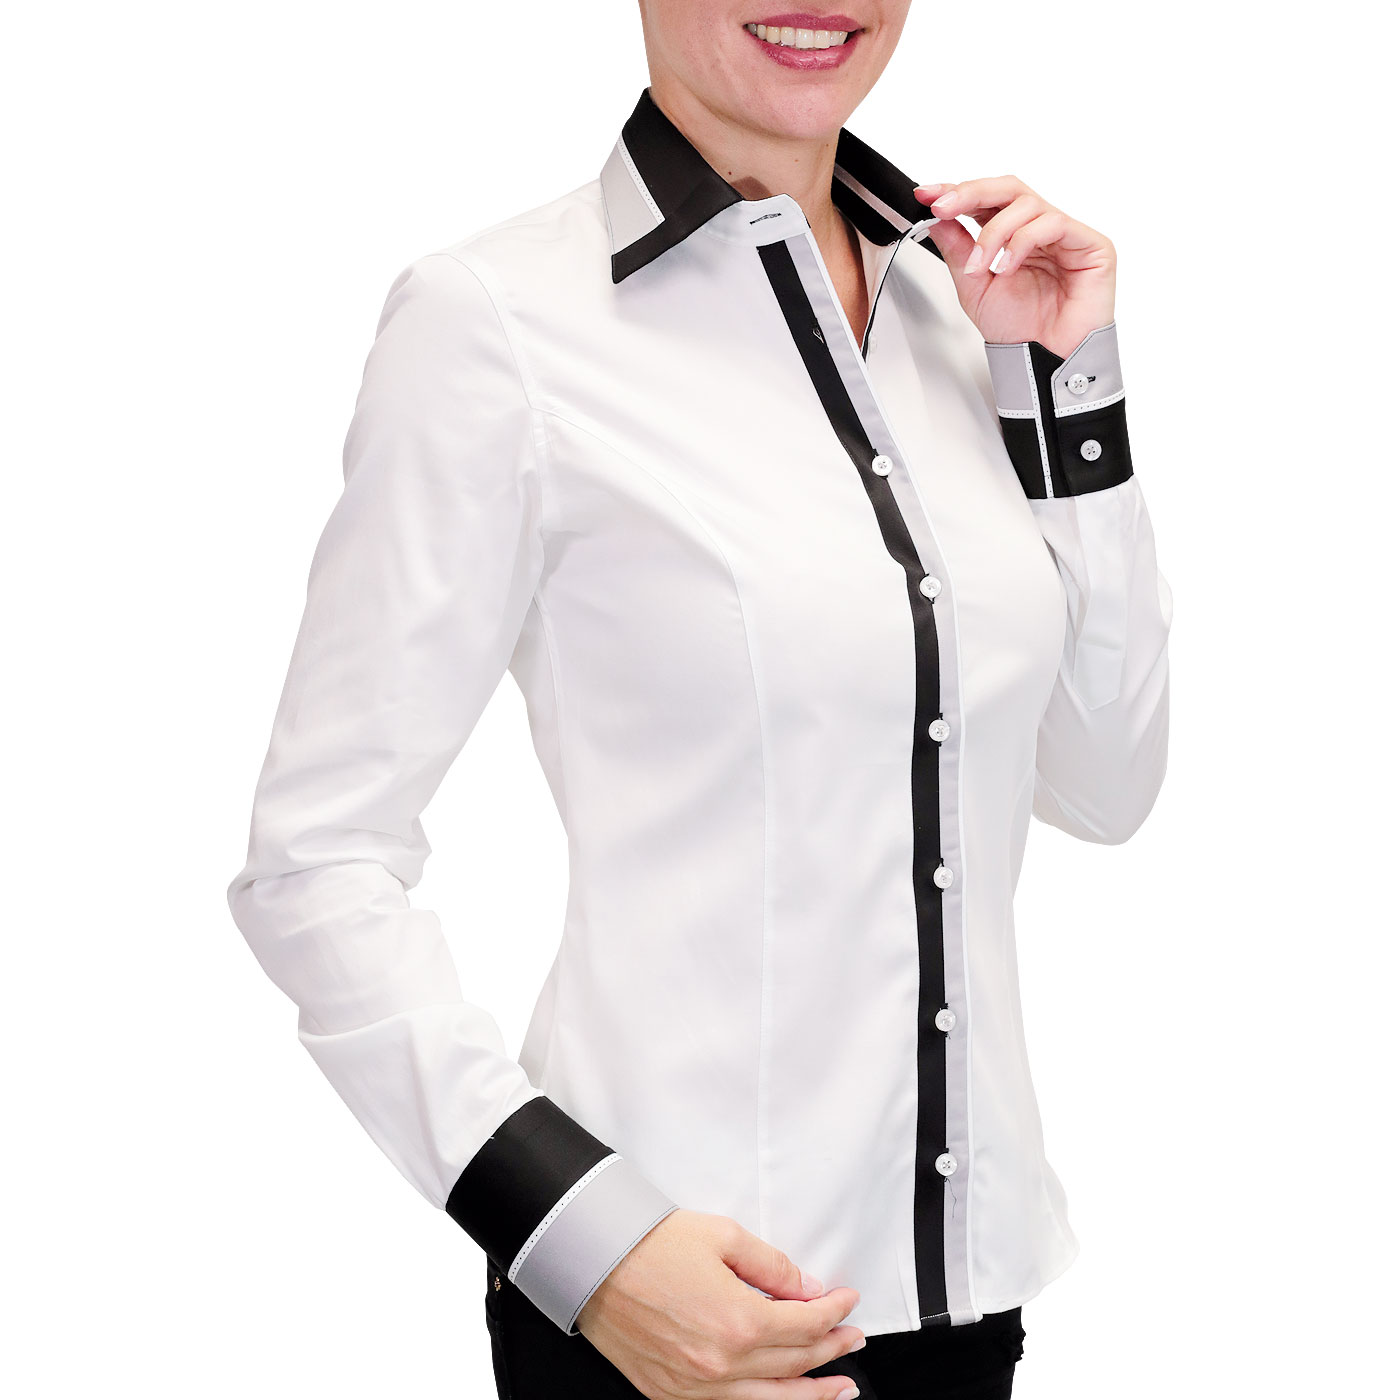 Fashion shirt for woman